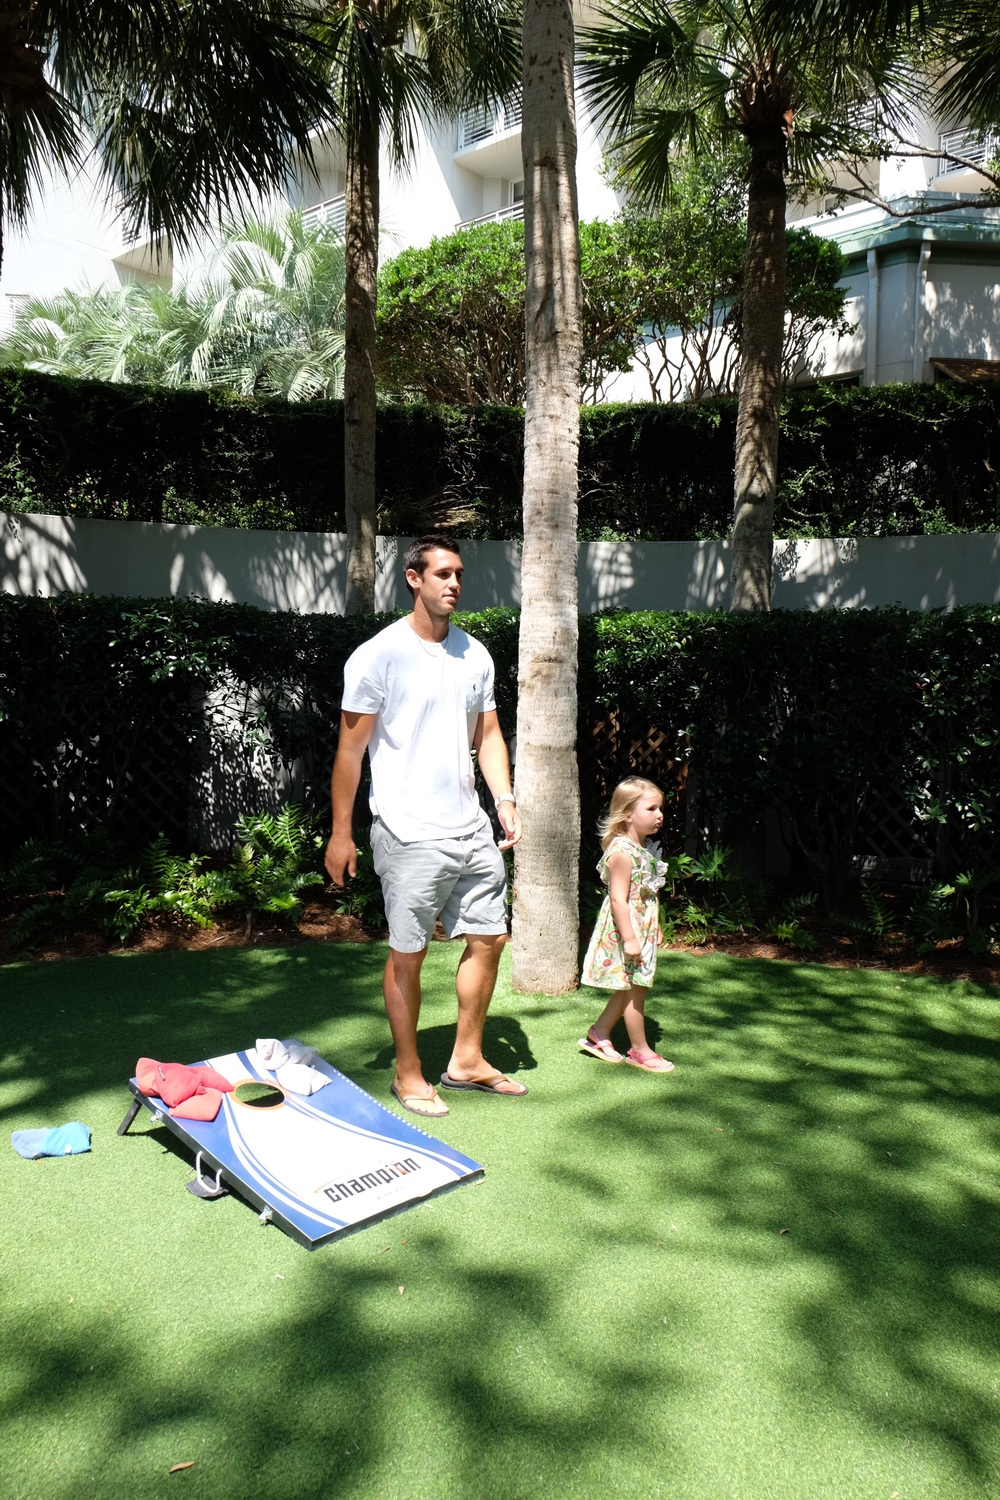 Brandon & Harper played a lot of cornhole!